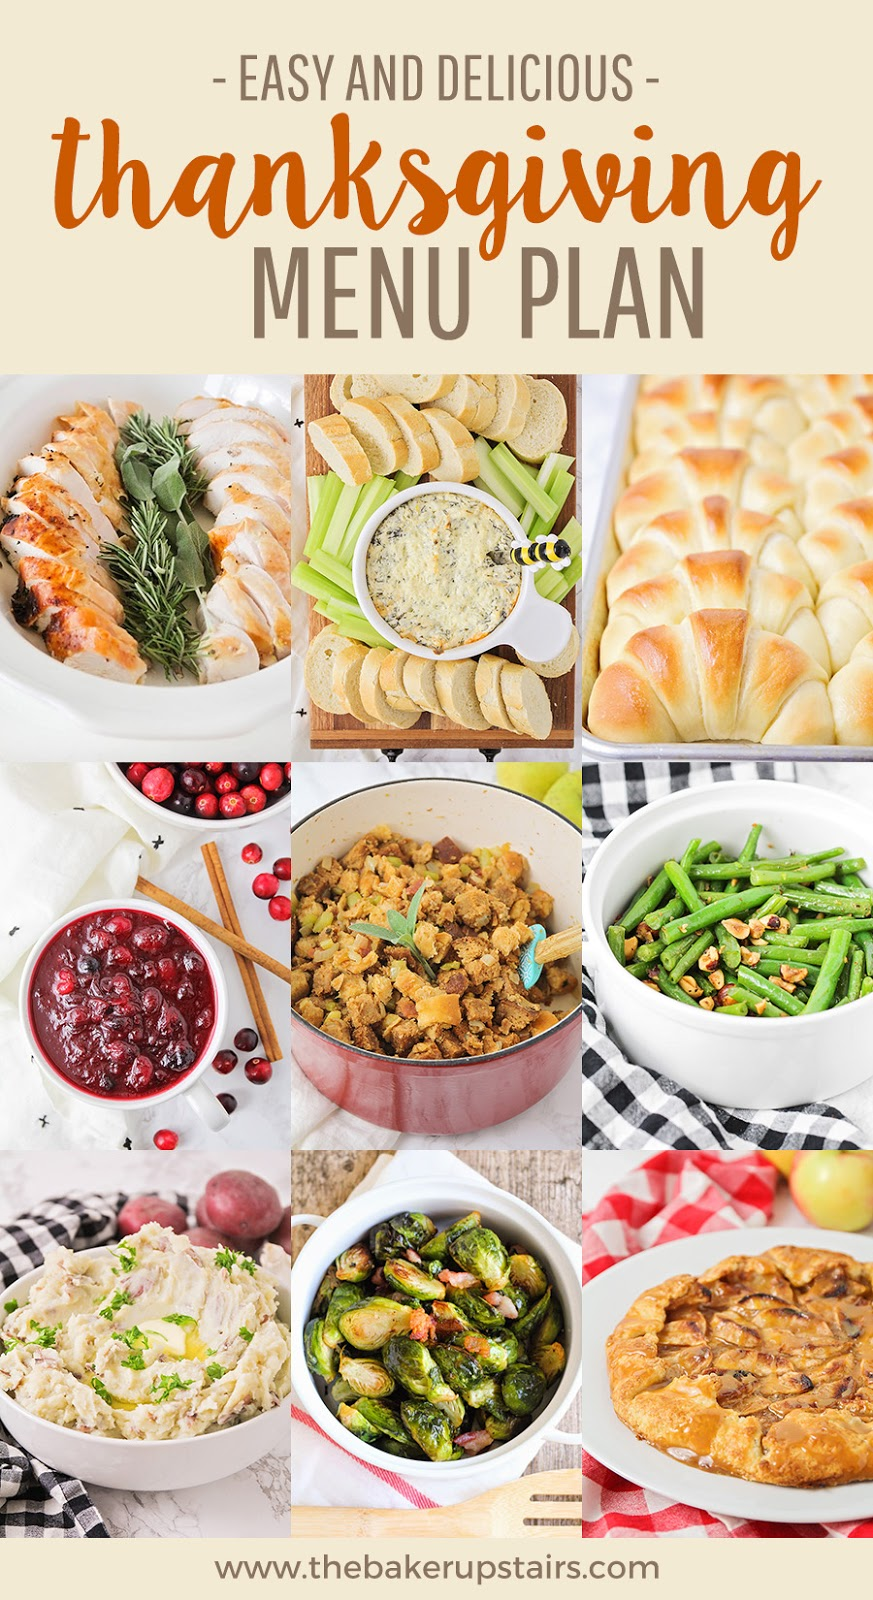 This easy and delicious Thanksgiving menu plan has all the best recipes for a tasty holiday!